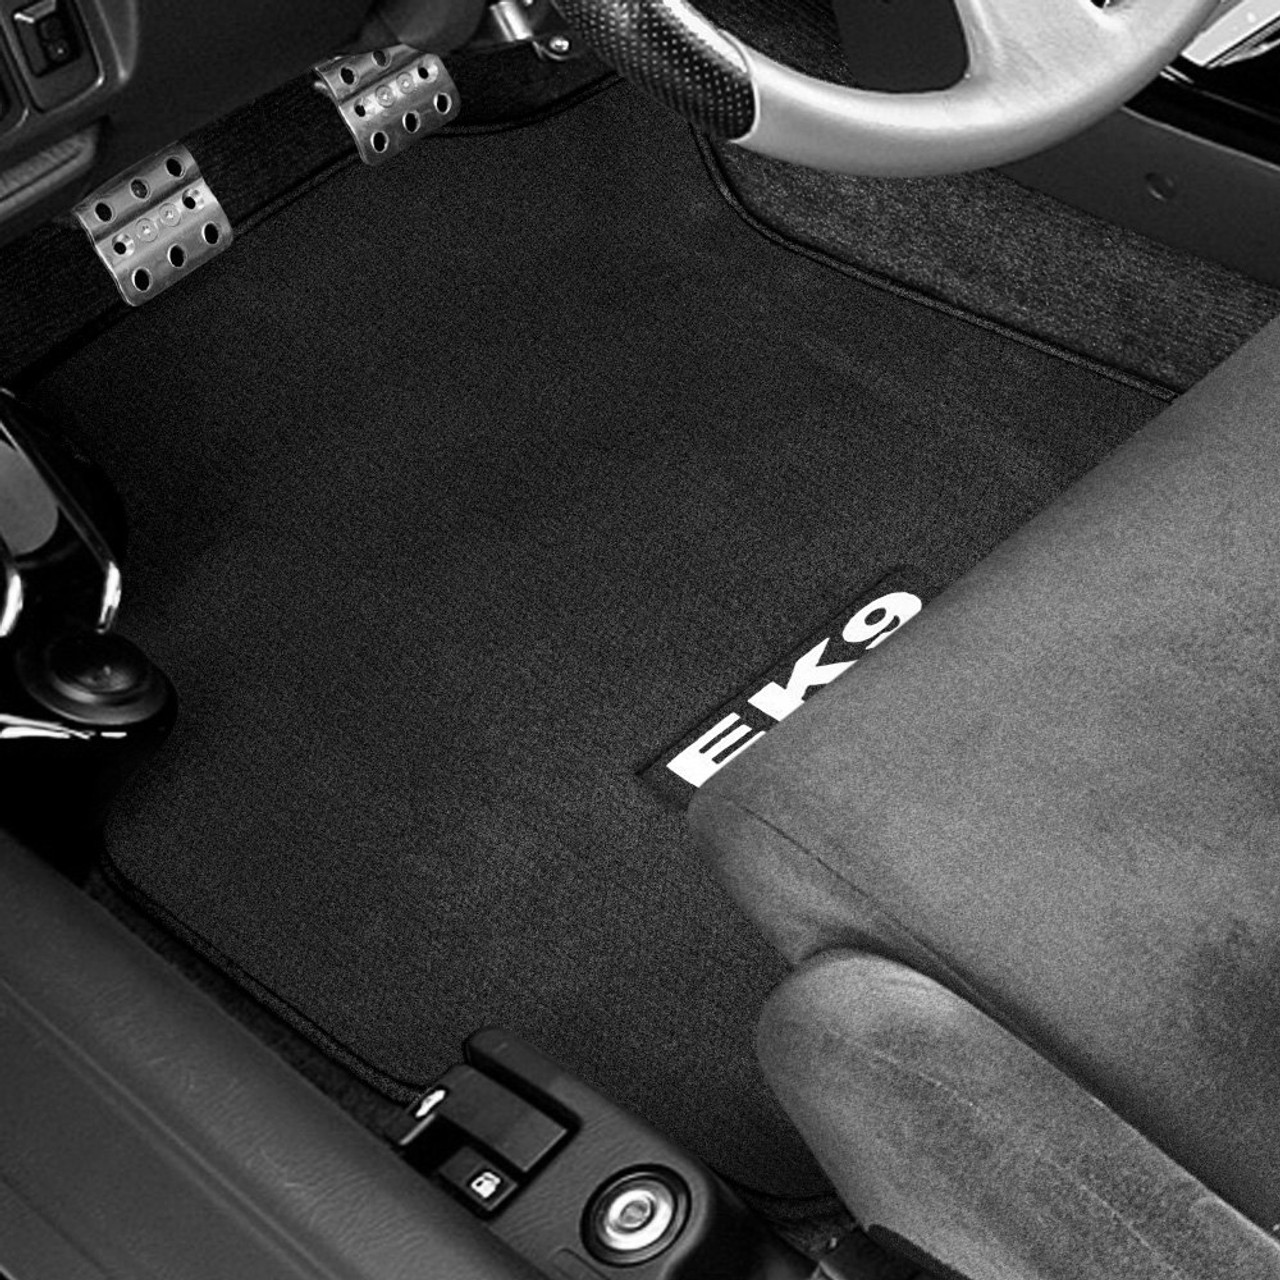 NRG - NRG Floor Carpet Mats Black Factory Fit